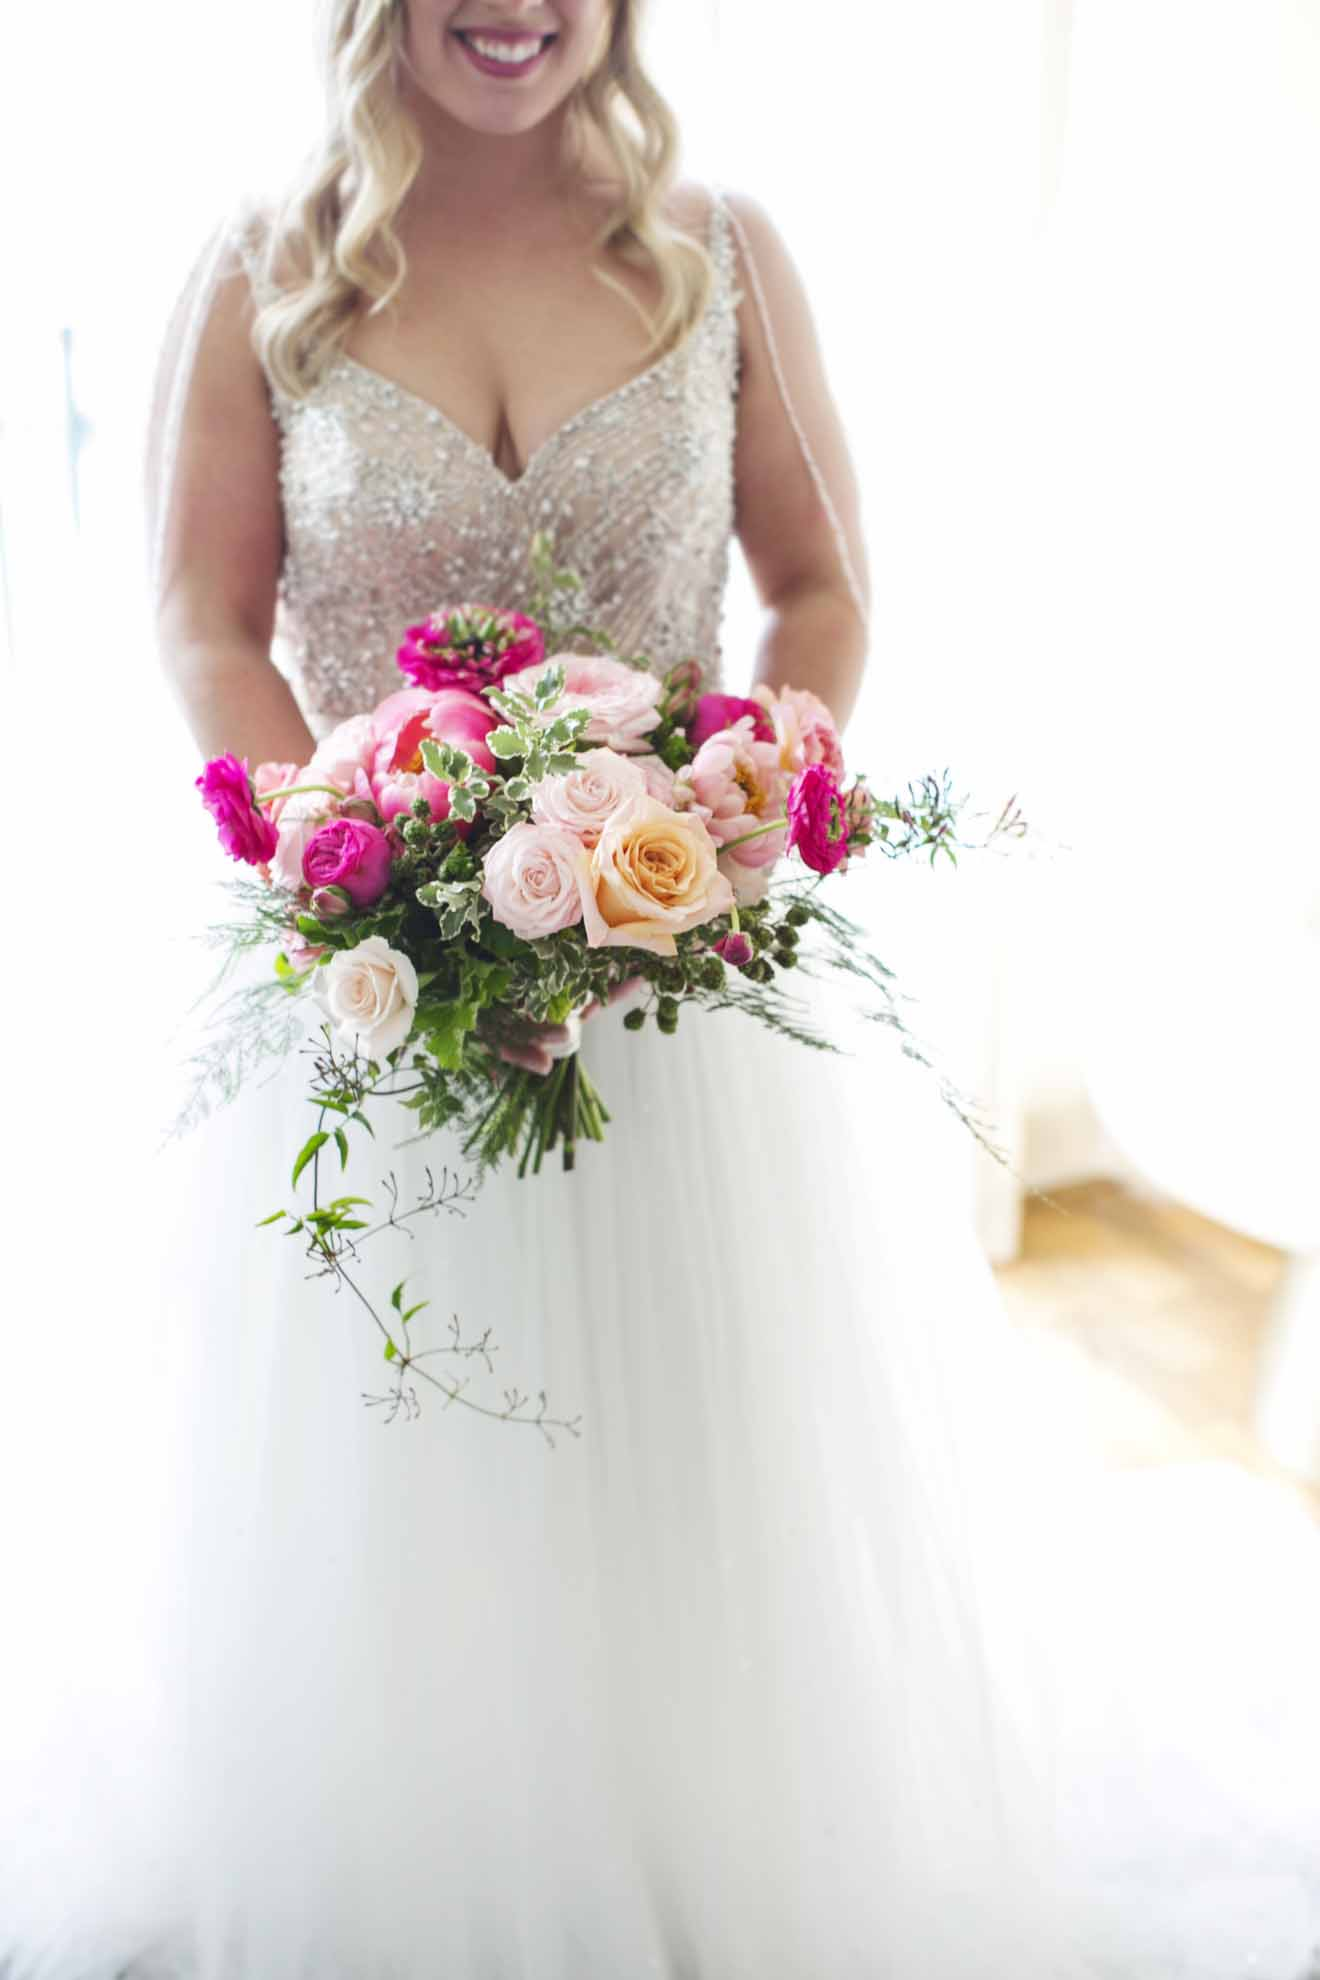 Hot pink and peach wedding bouquet with trailing greenery held by bride in white wedding dress - Seattle Wedding Flowers by Flora Nova Design; Hot pink and peach wedding at Roche Harbor Resort